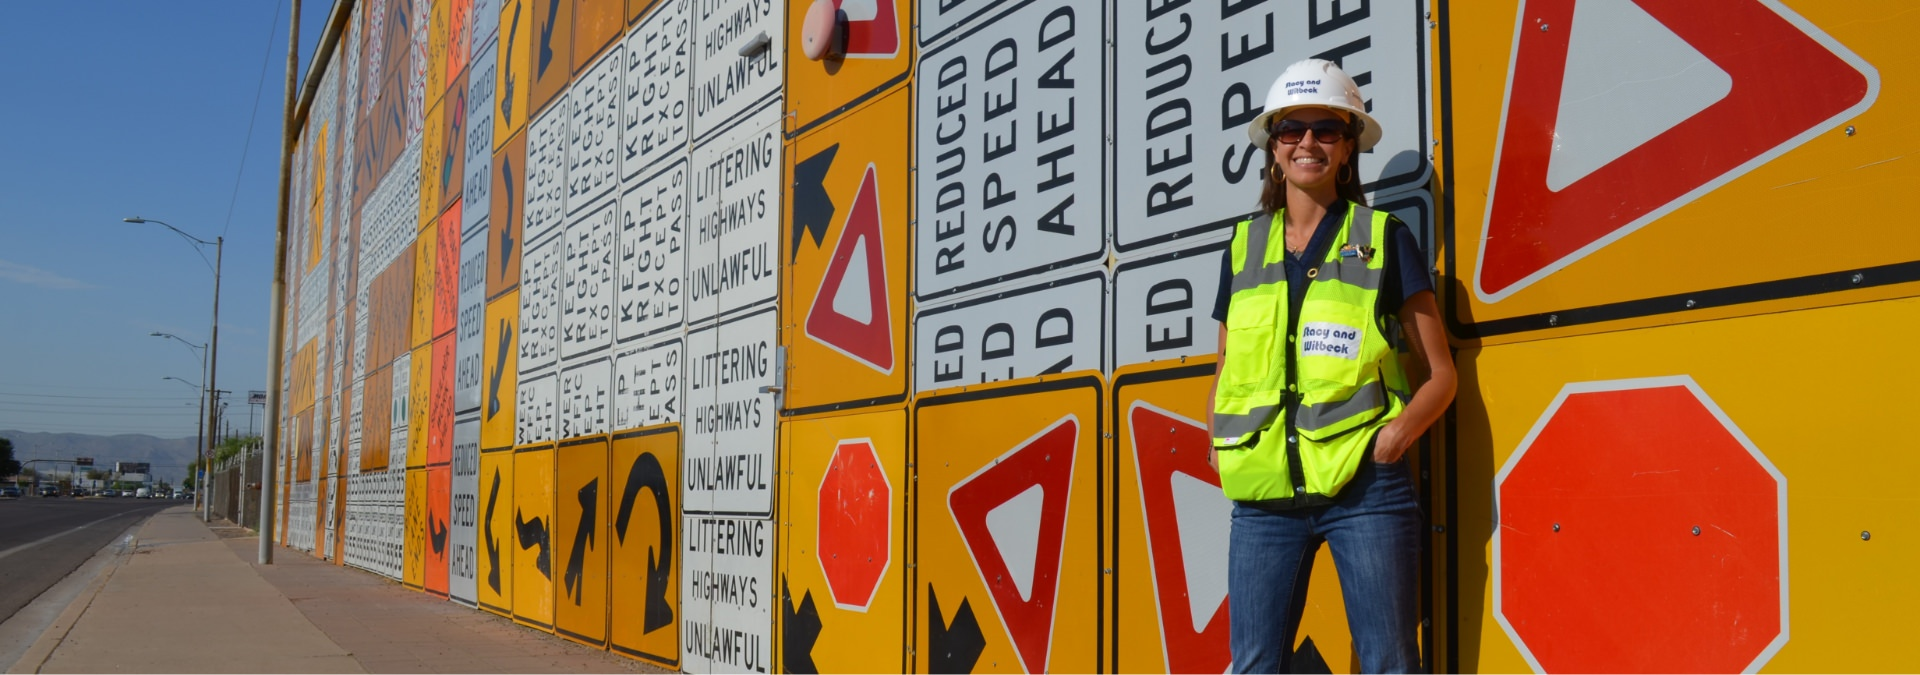 A woman leans against a wall covered in construction signs.